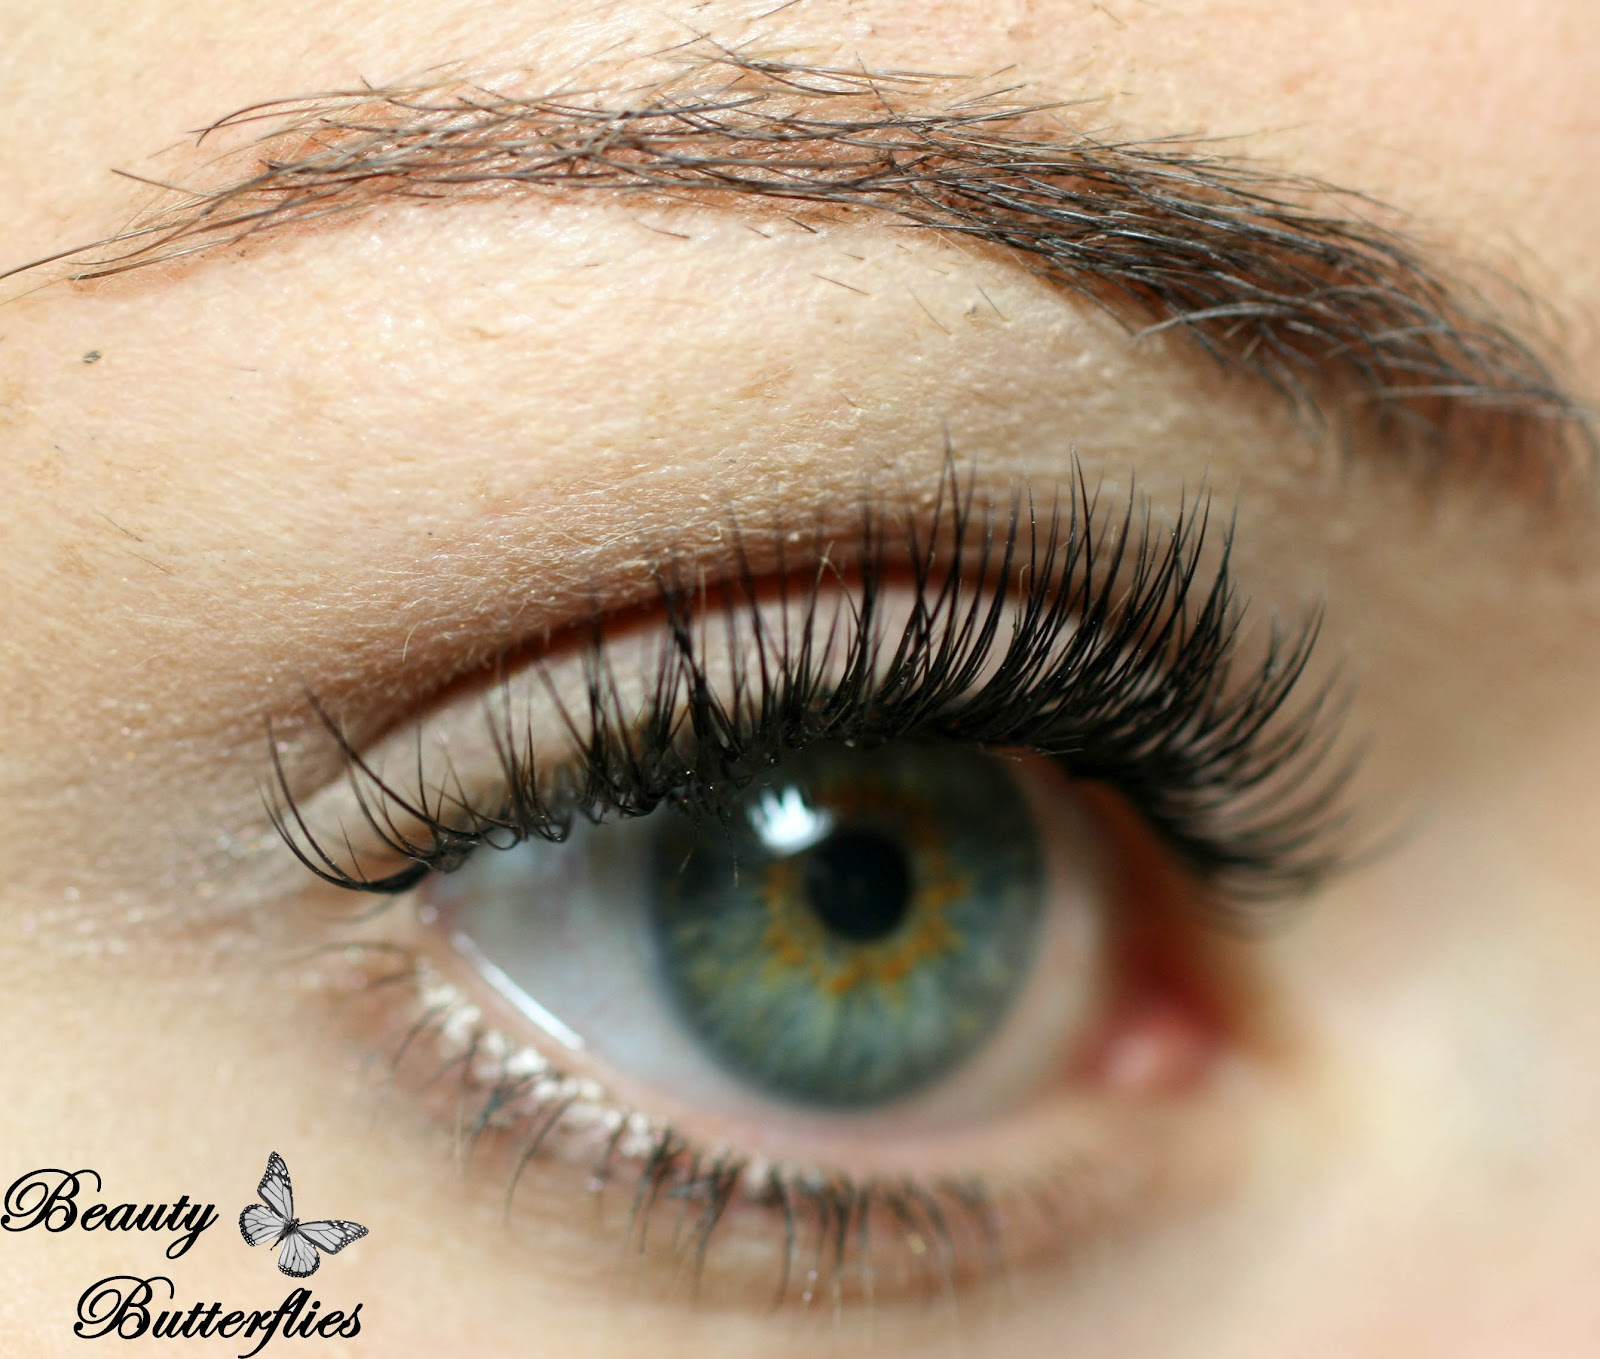 Review Luxus Lashes Traumhafte Wimpern Bei Elegantexcellent